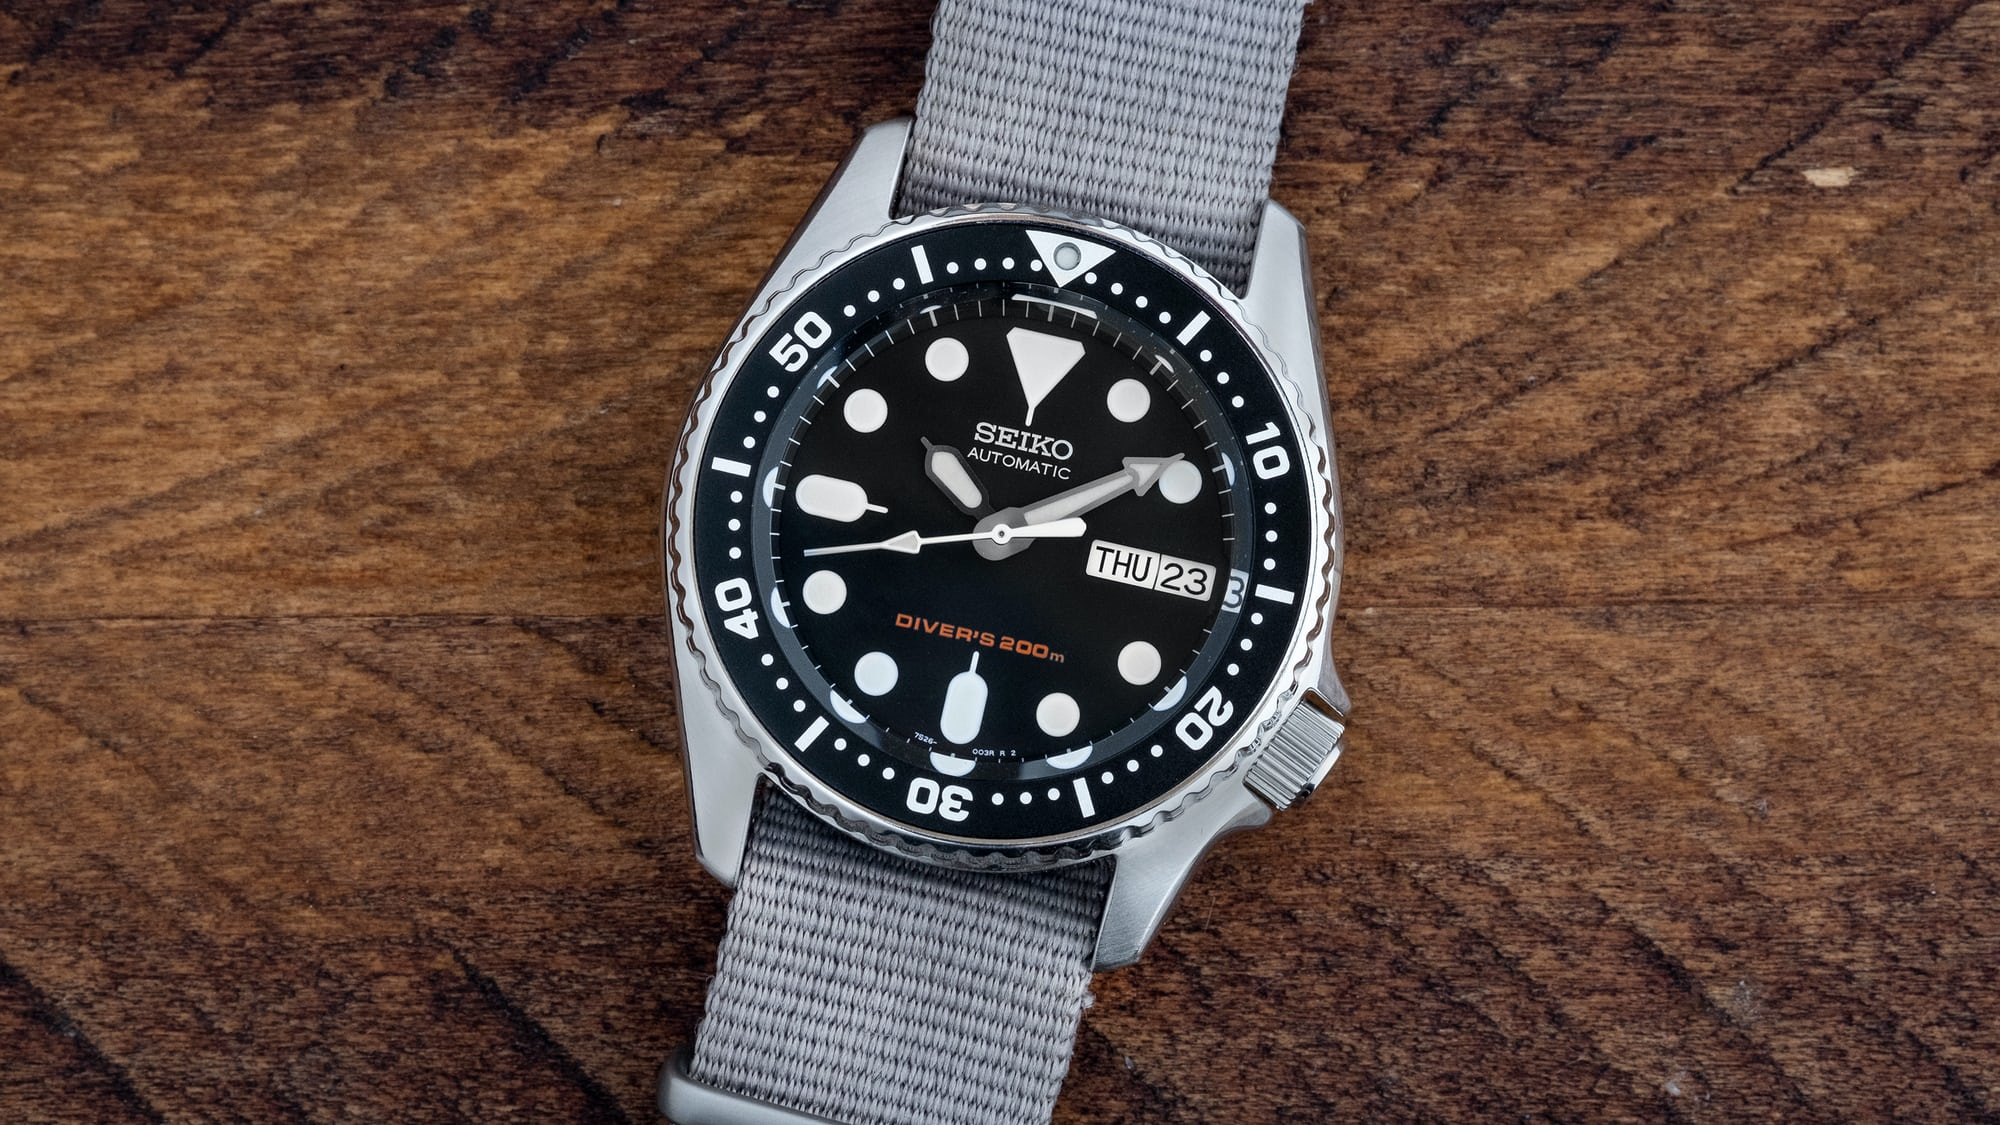 The Value Proposition: The Seiko SKX013 Dive Watch